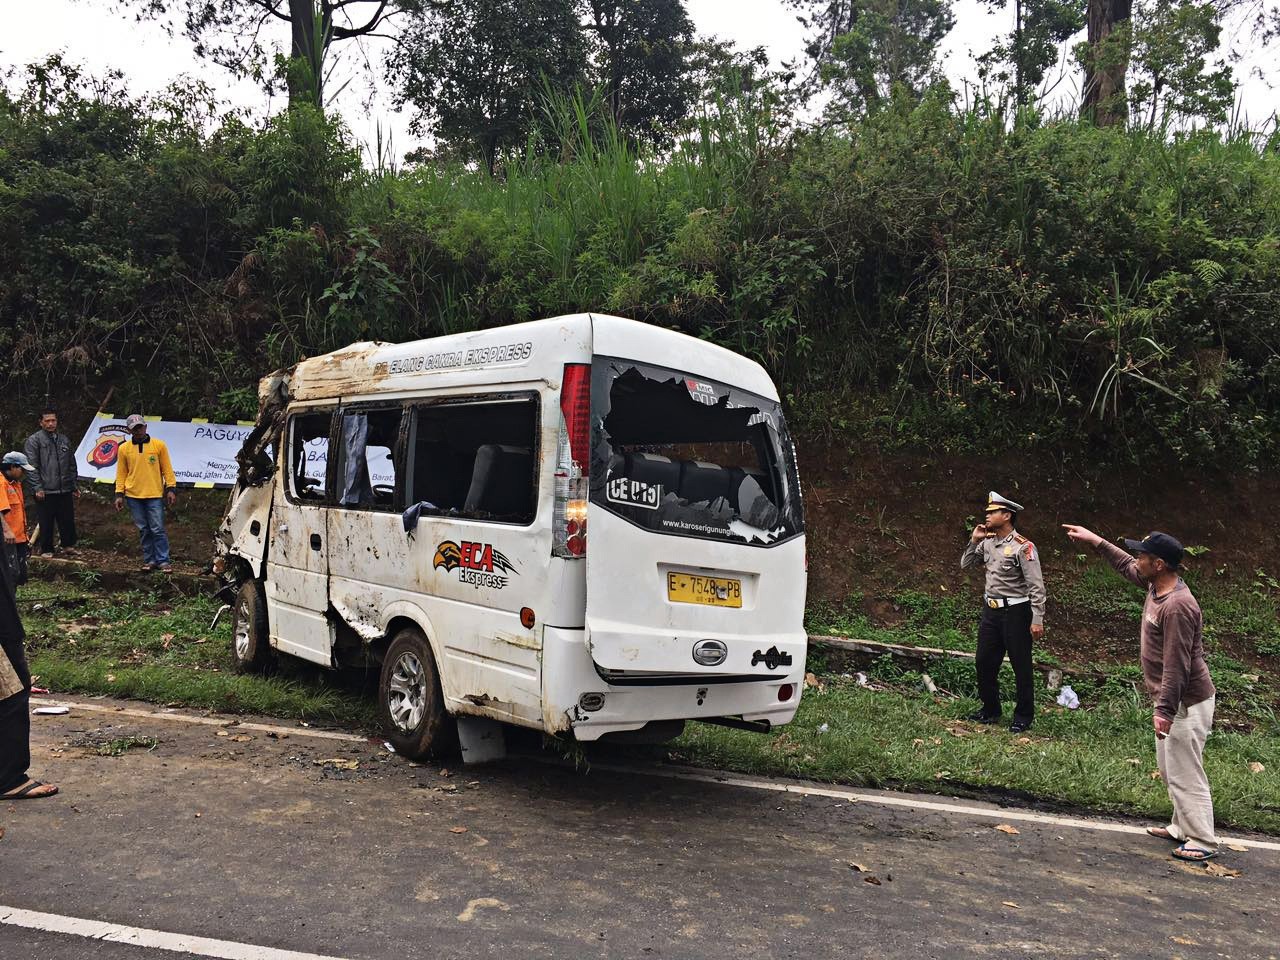 Sixteen injured in traffic accident in West Java - National - The